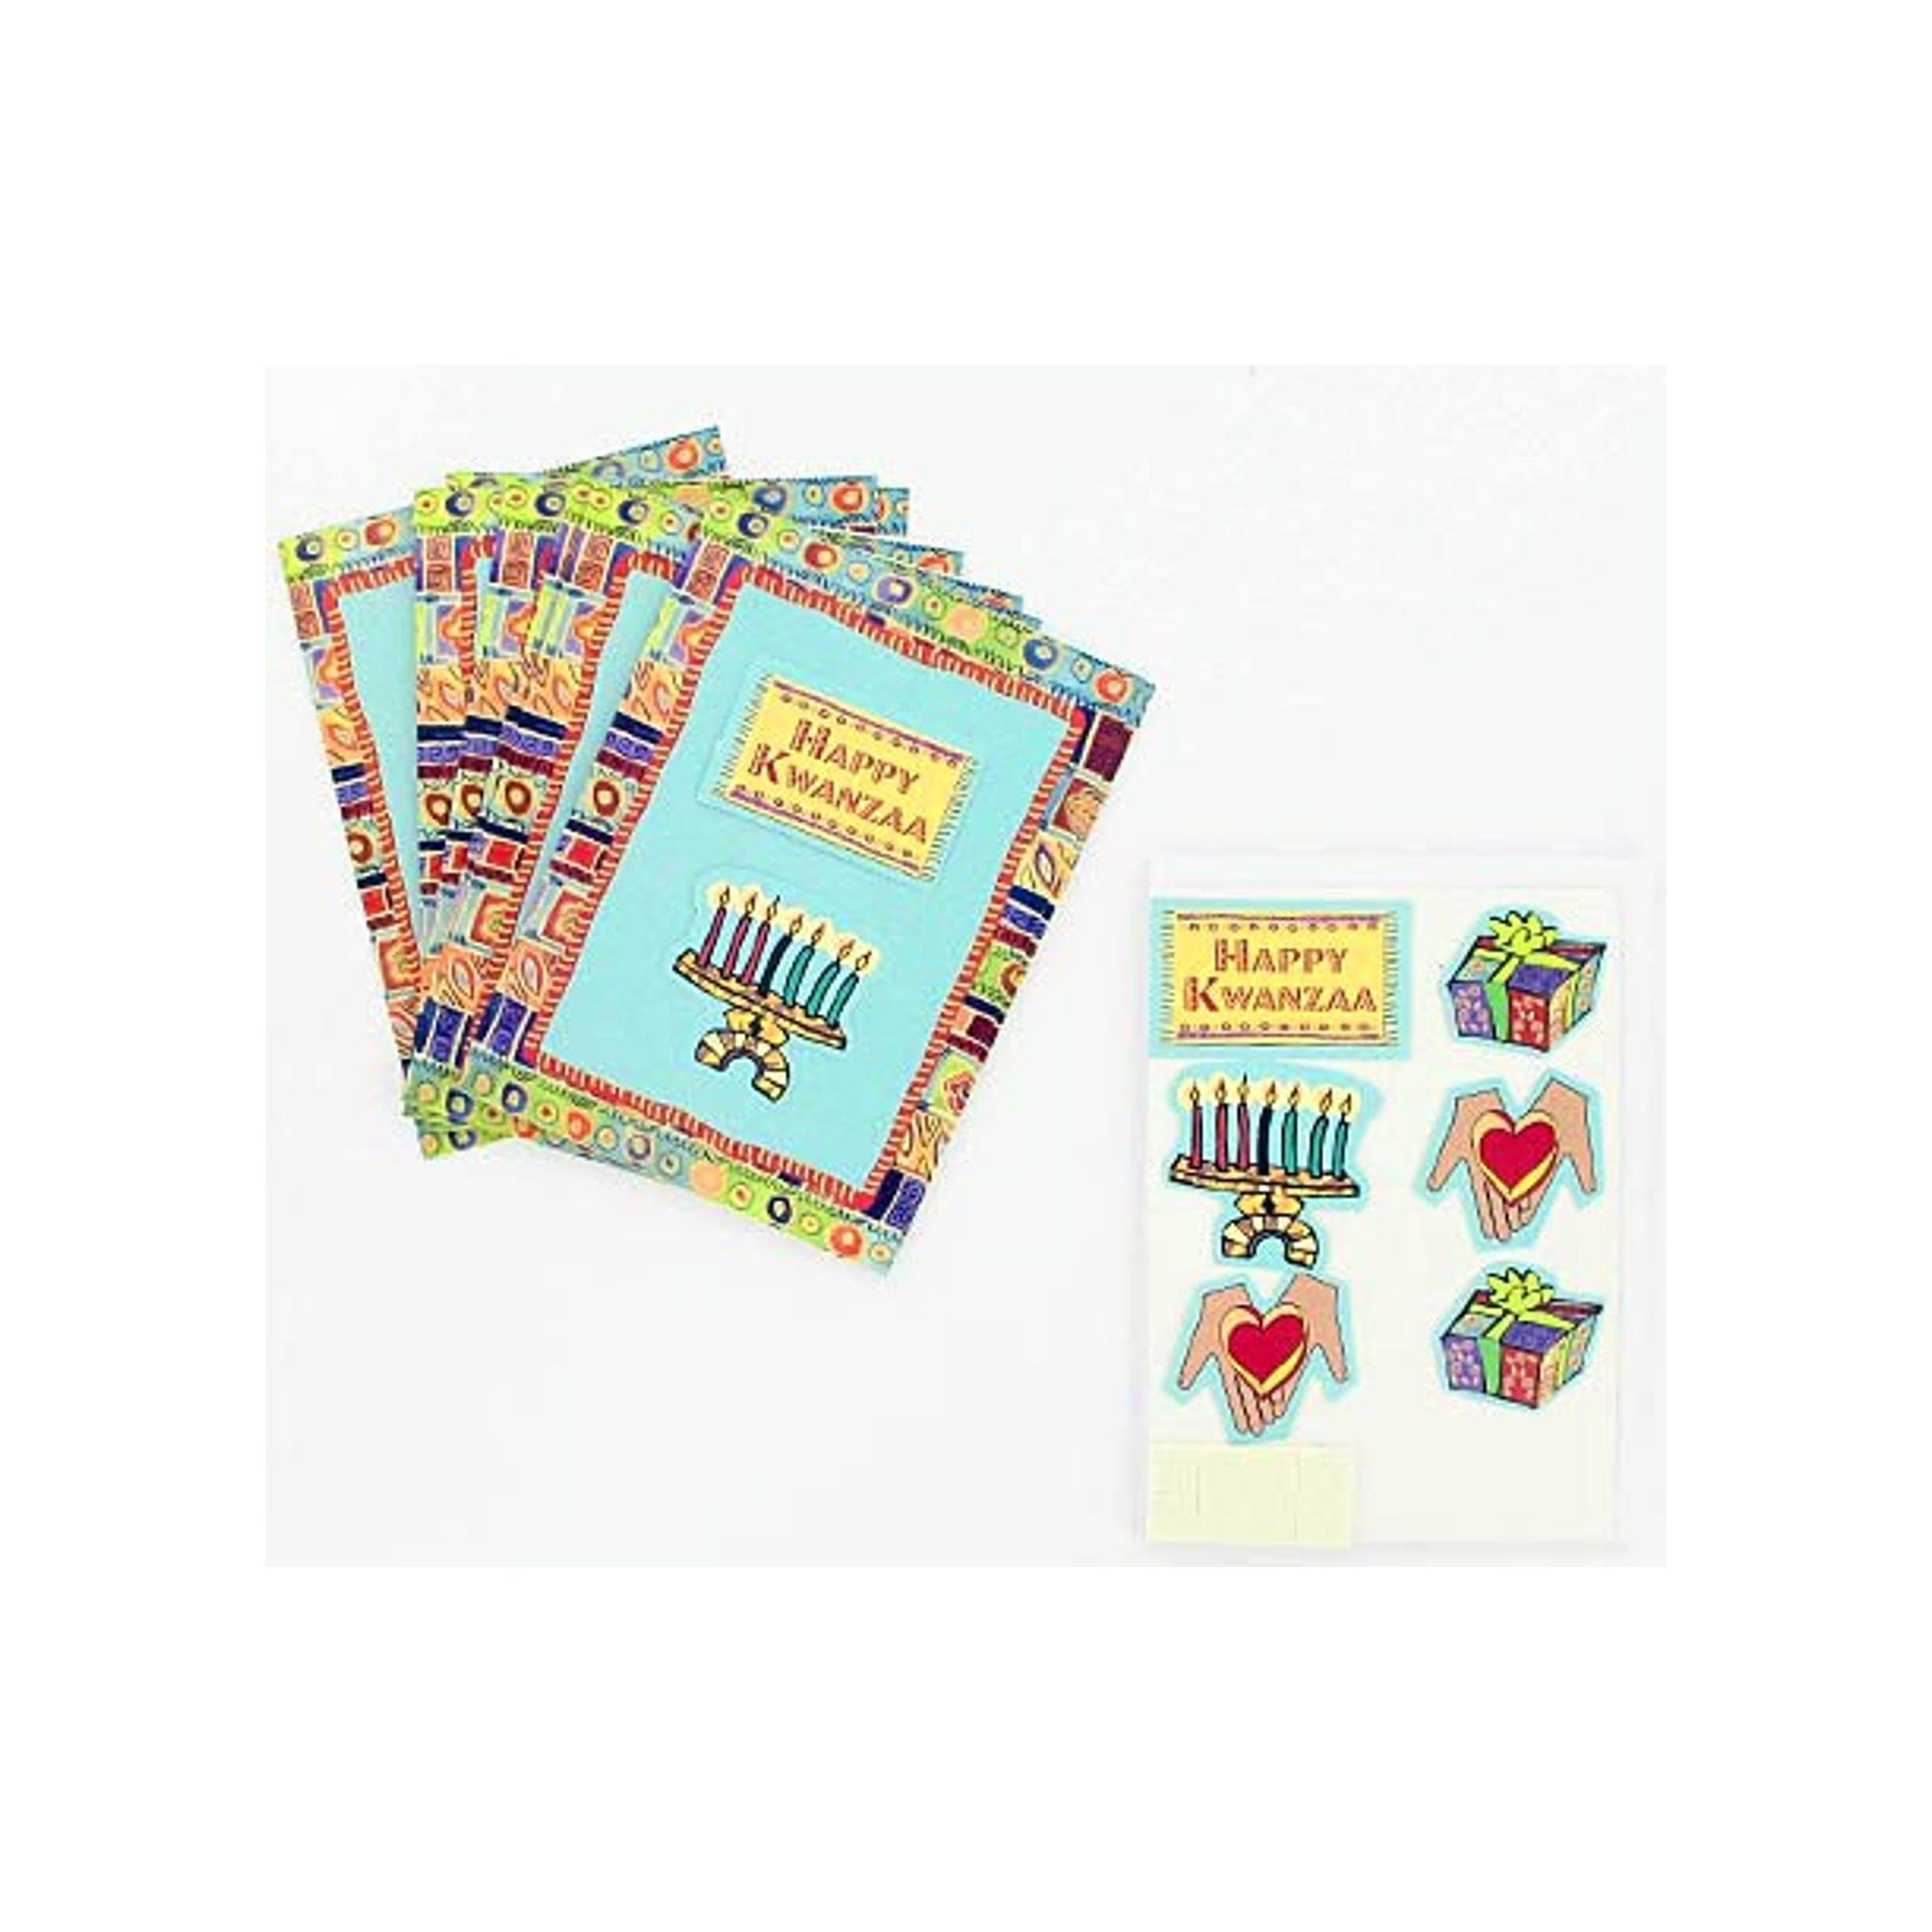 Kwanzaa Note Cards with ENVELOPES- Qty 24